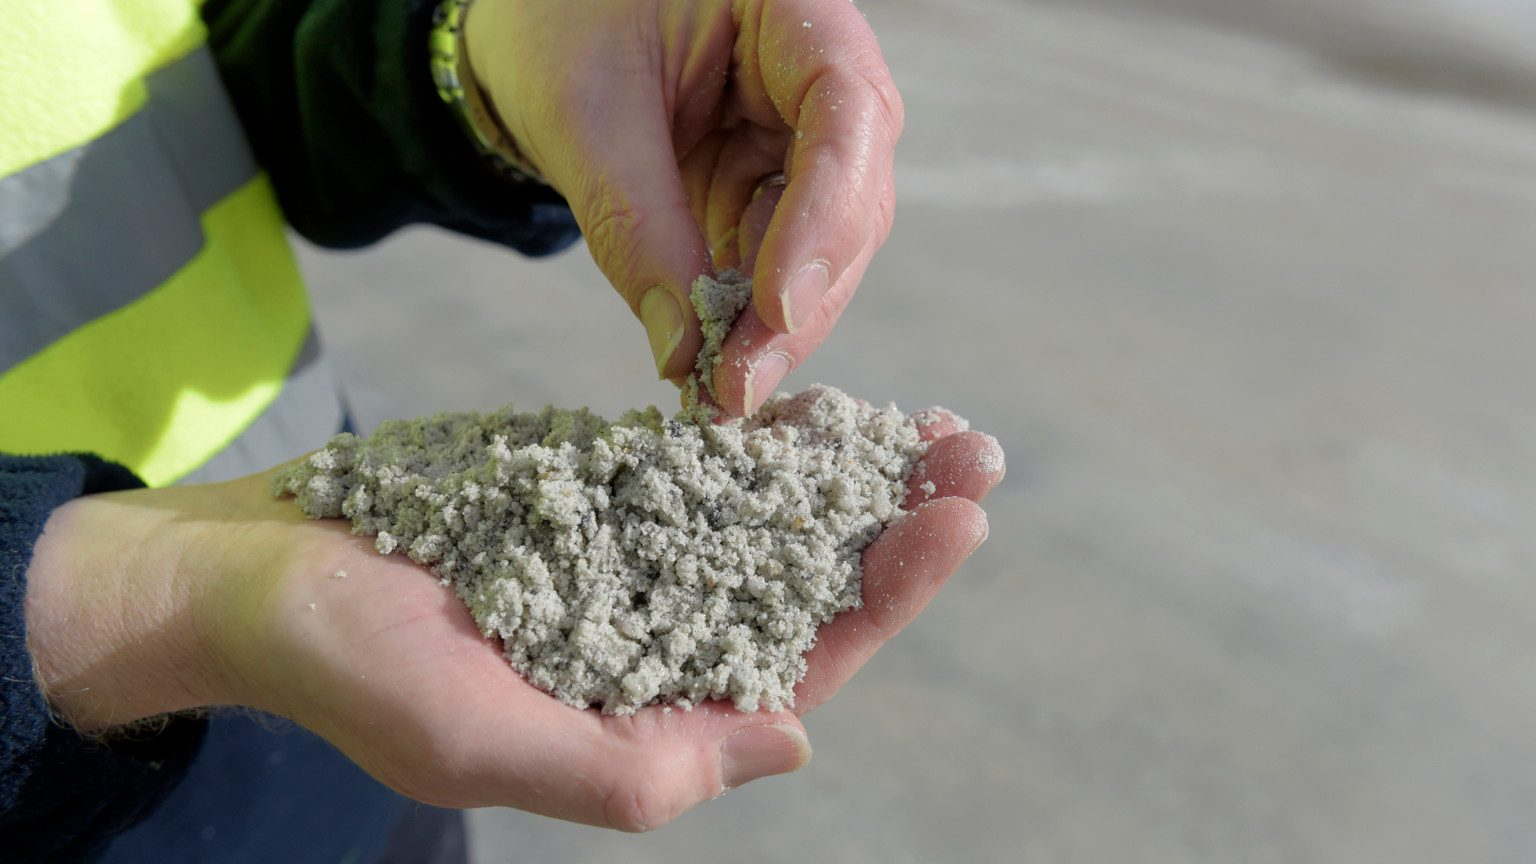 Close up of worker's hands holding processed lithium